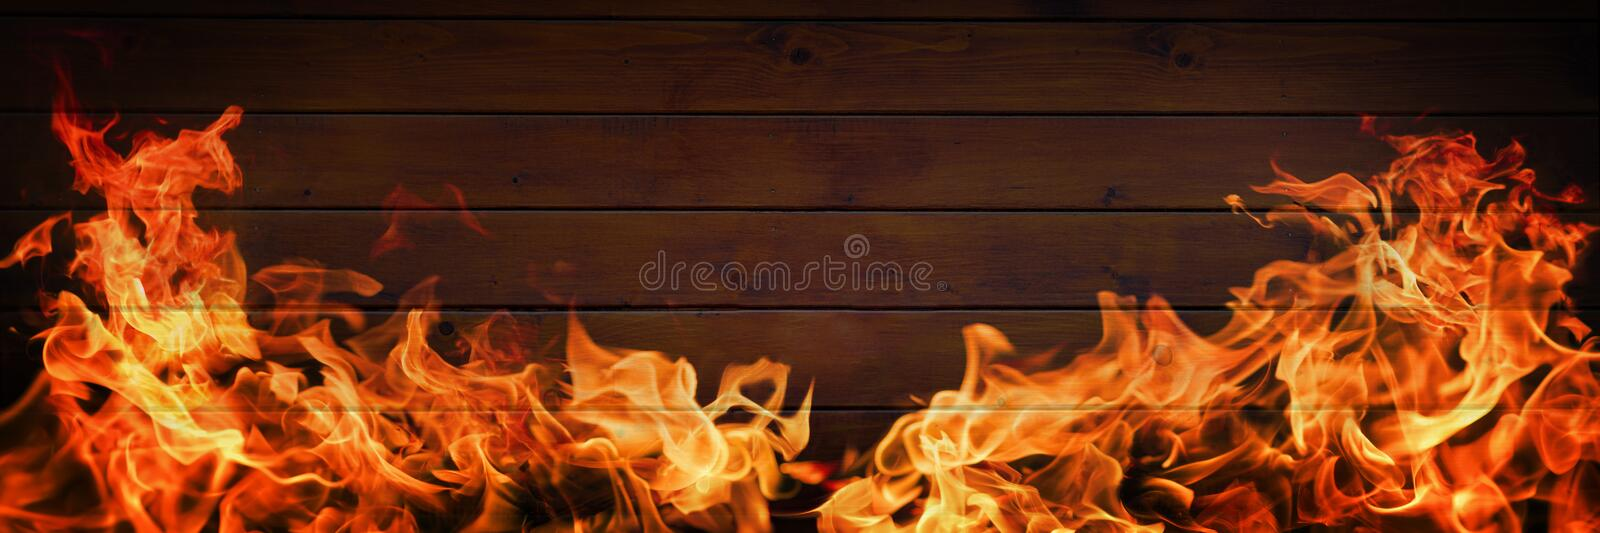 Flames on wooden background stock photography